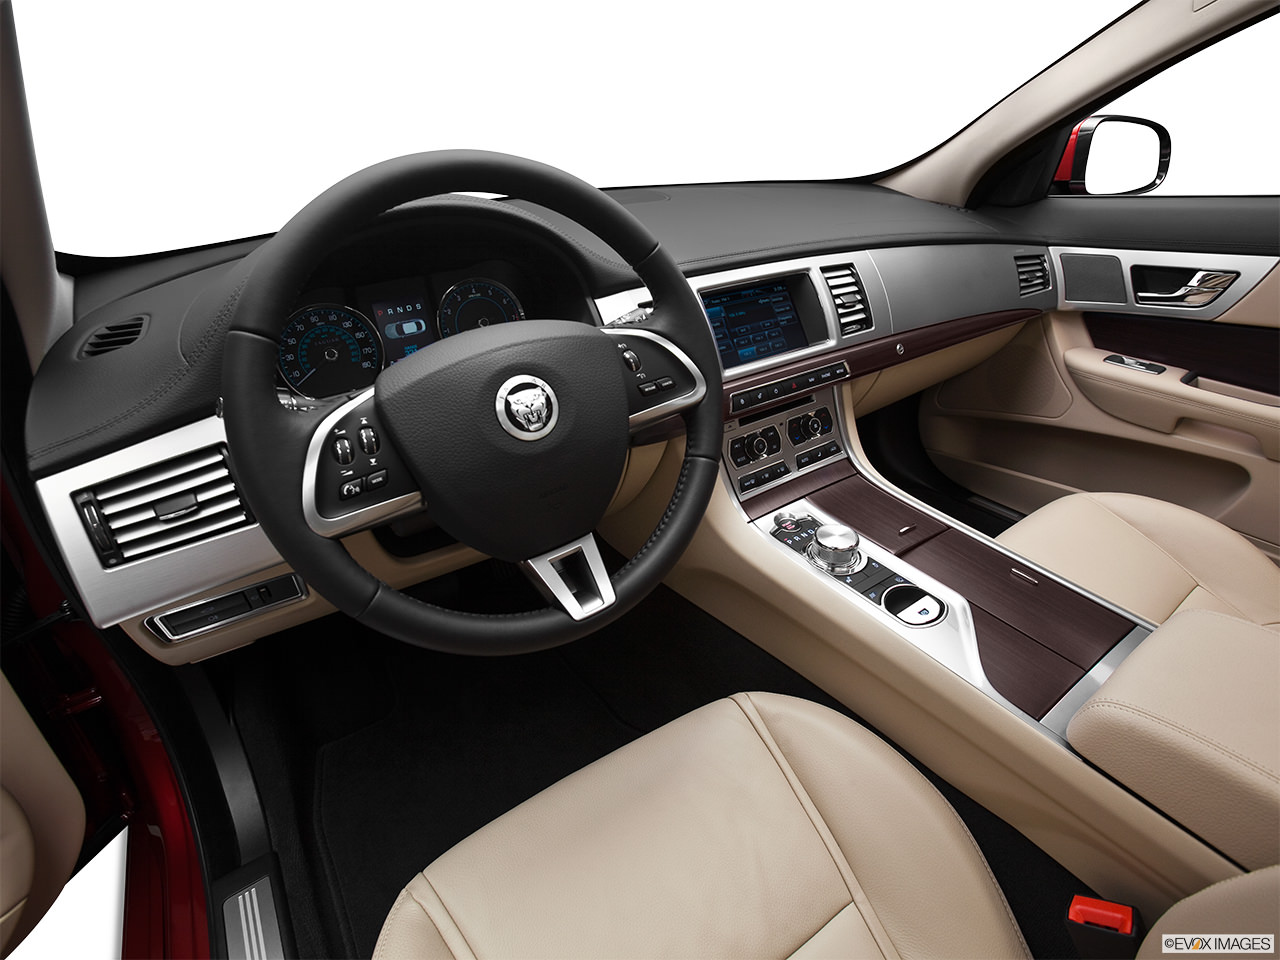 Jaguar XF 2012 Interior